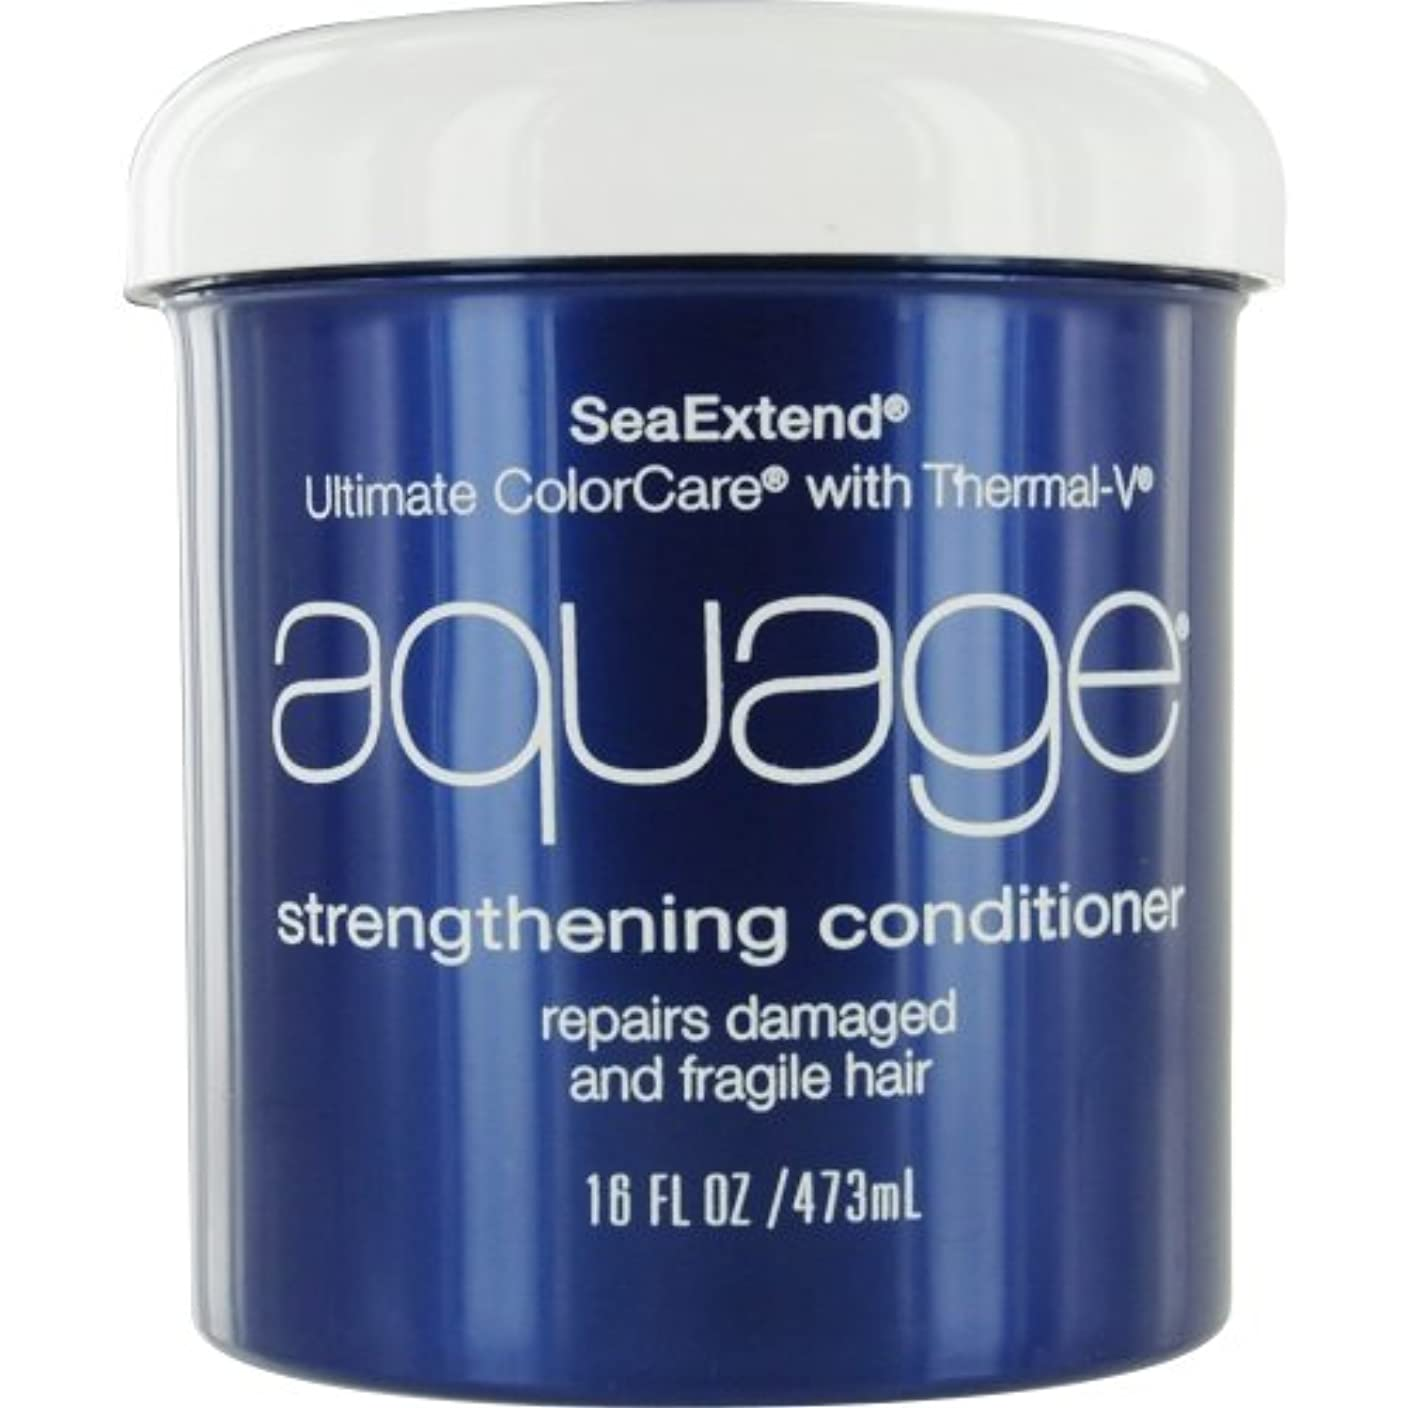 Seaextend Ultimate Colorcare with Thermal-V Strengthening Conditioner